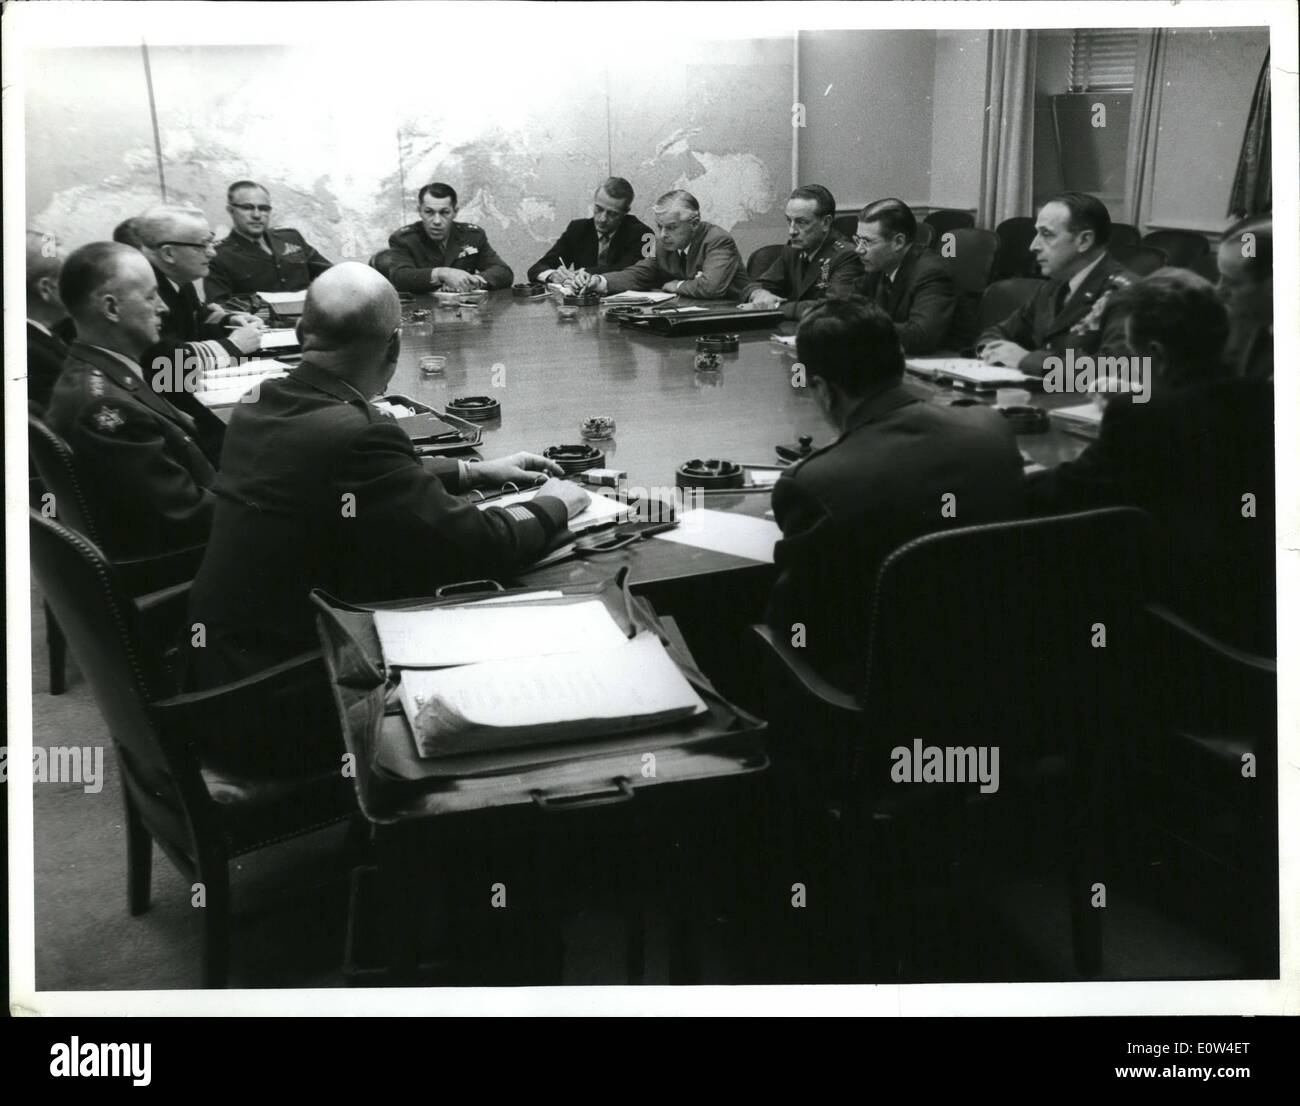 Apr. 04, 1961 - Secretary of Defense Robert S. McNamara and other Dept. of Defense officials meet with members of the Joint Chiefs of Staff and Joint Staff, at the Pentagon. (L to R, clockwise): Lt. Gen. Barksdale Hamlett, Deputy COFS for Military Operations, USA; General Clyde D. Eddleman, Vice COFS, USA; Deputy Secretary of Defense Roswell L. Gilpatric, Admiral Arleigh A. Burke, Chief of Naval Operations; Vice Admiral Ulysses S. G. Sharp, Jr., (partially visible) Deputy Chief of Naval Operations for Plans and Policy; General David M. Shoup, Commandant, USMC; Maj. Gen. Frederick L - Stock Image